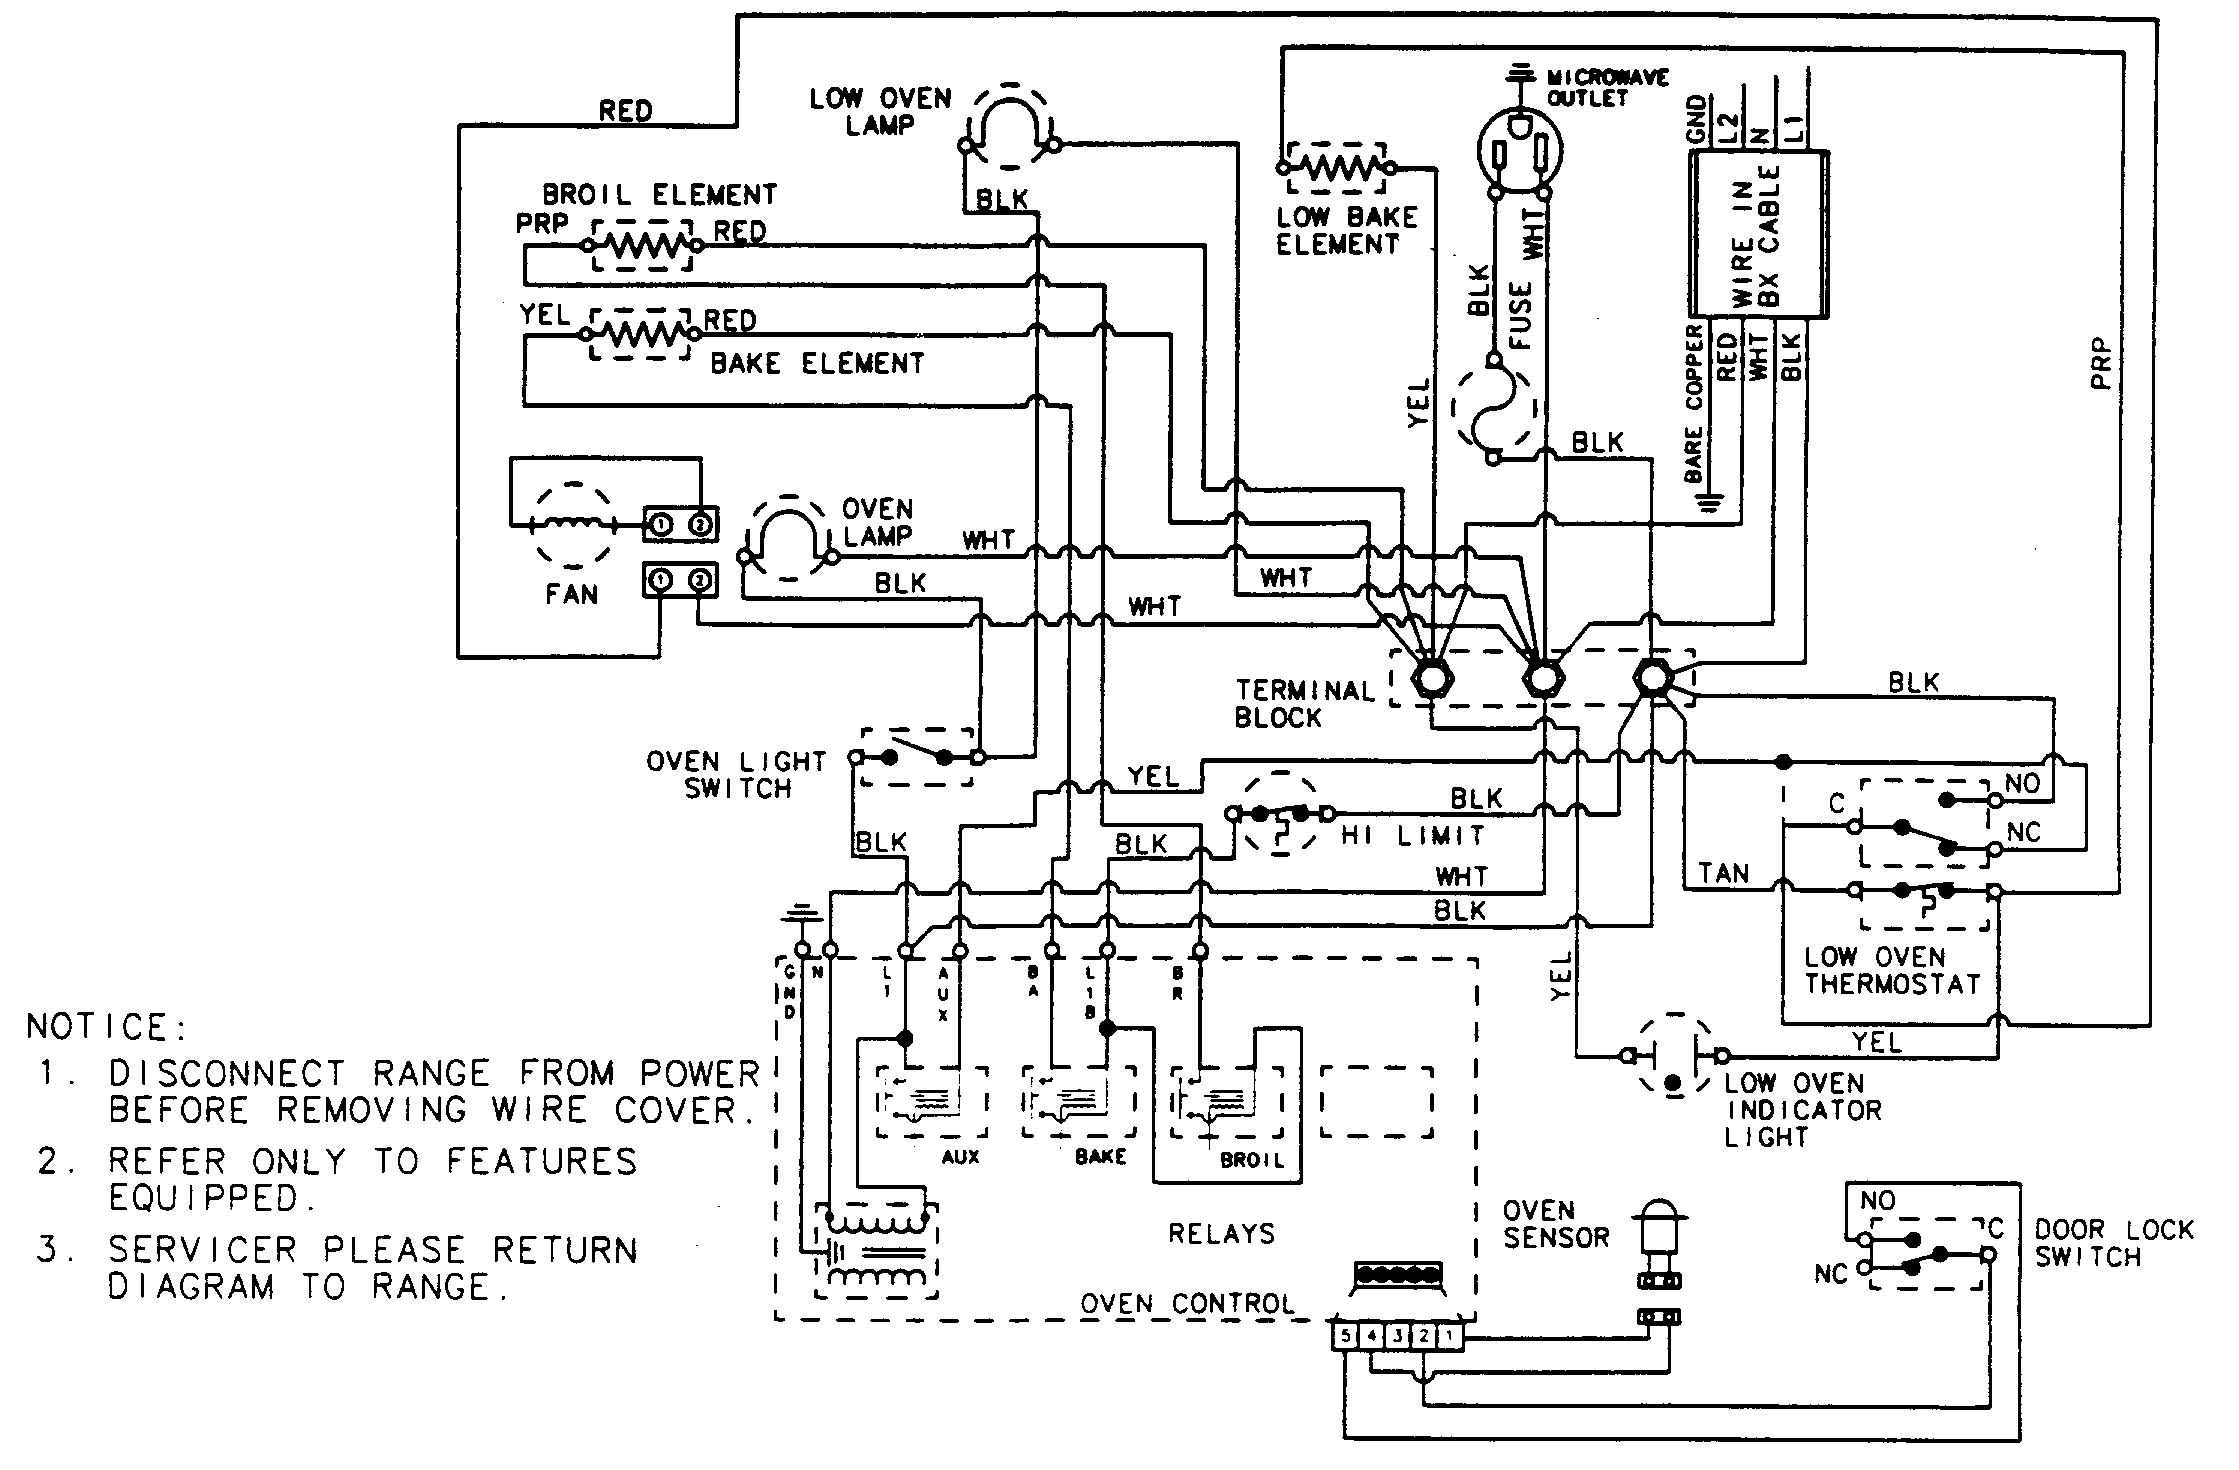 wiring information parts magic chef 9825vuv electric oven timer stove clocks and electric oven wiring diagram at honlapkeszites.co